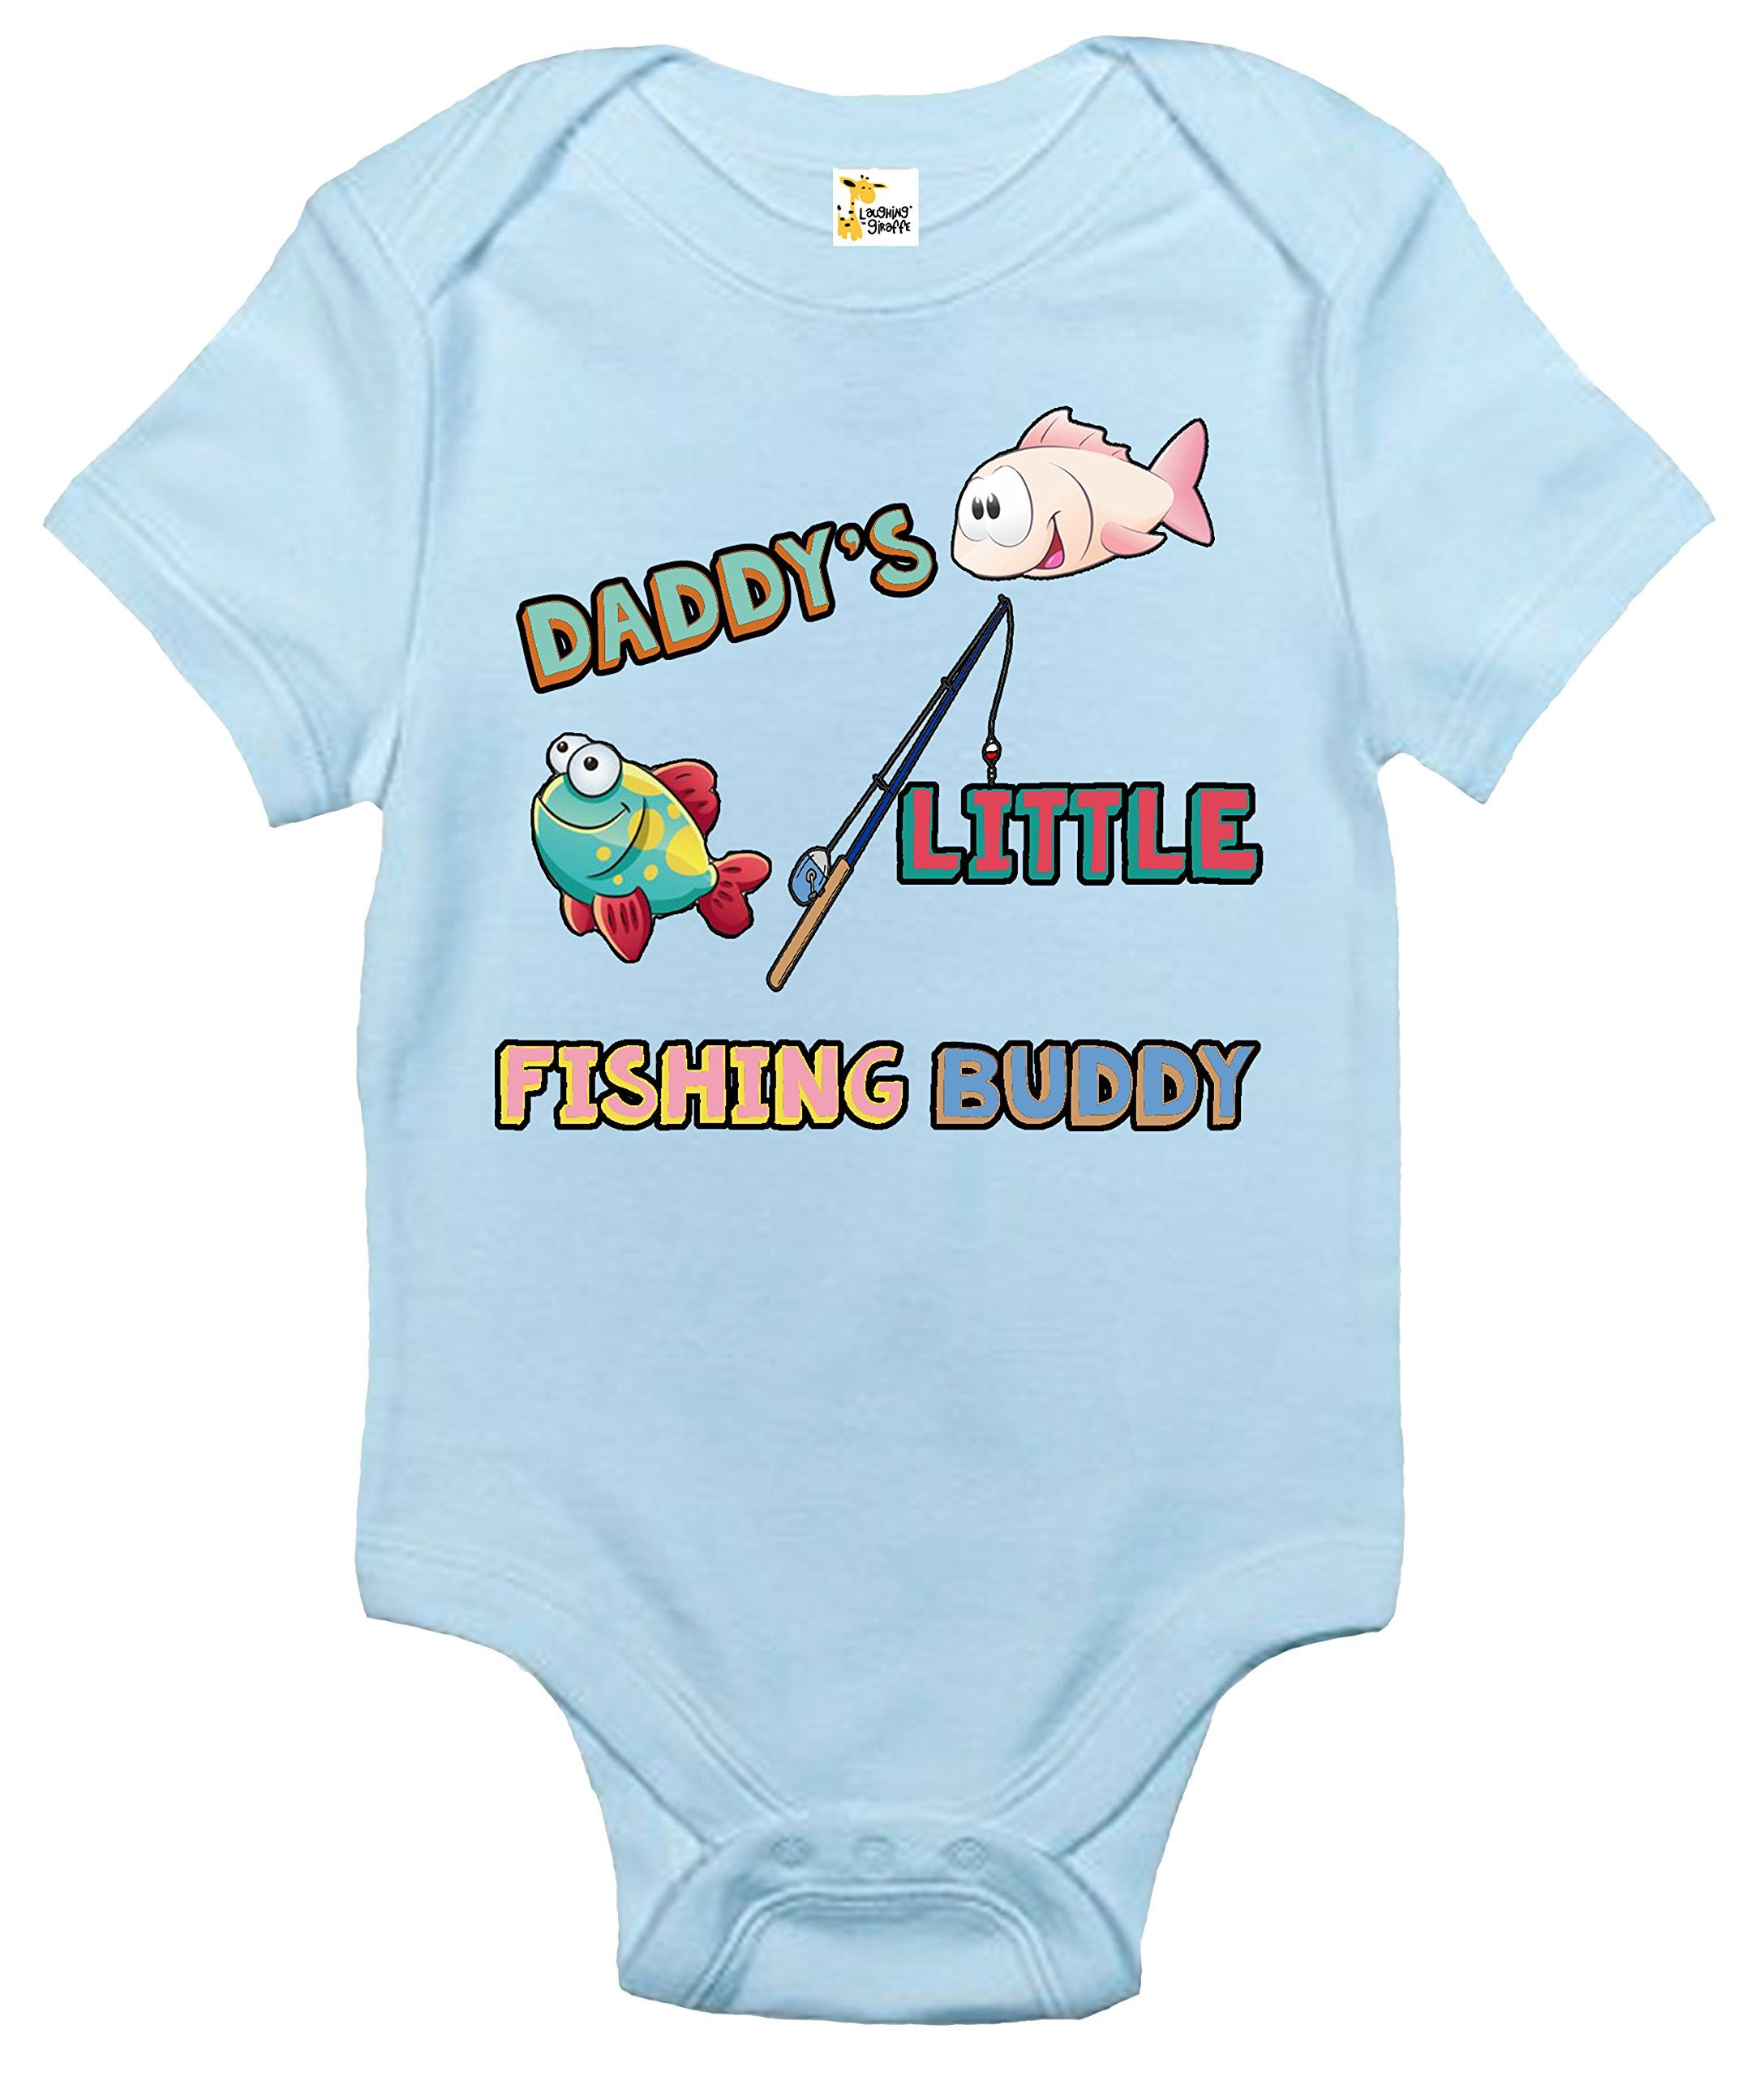 Daddy s Little Fishing Buddy Baby Bodysuit Cute Baby Clothes for